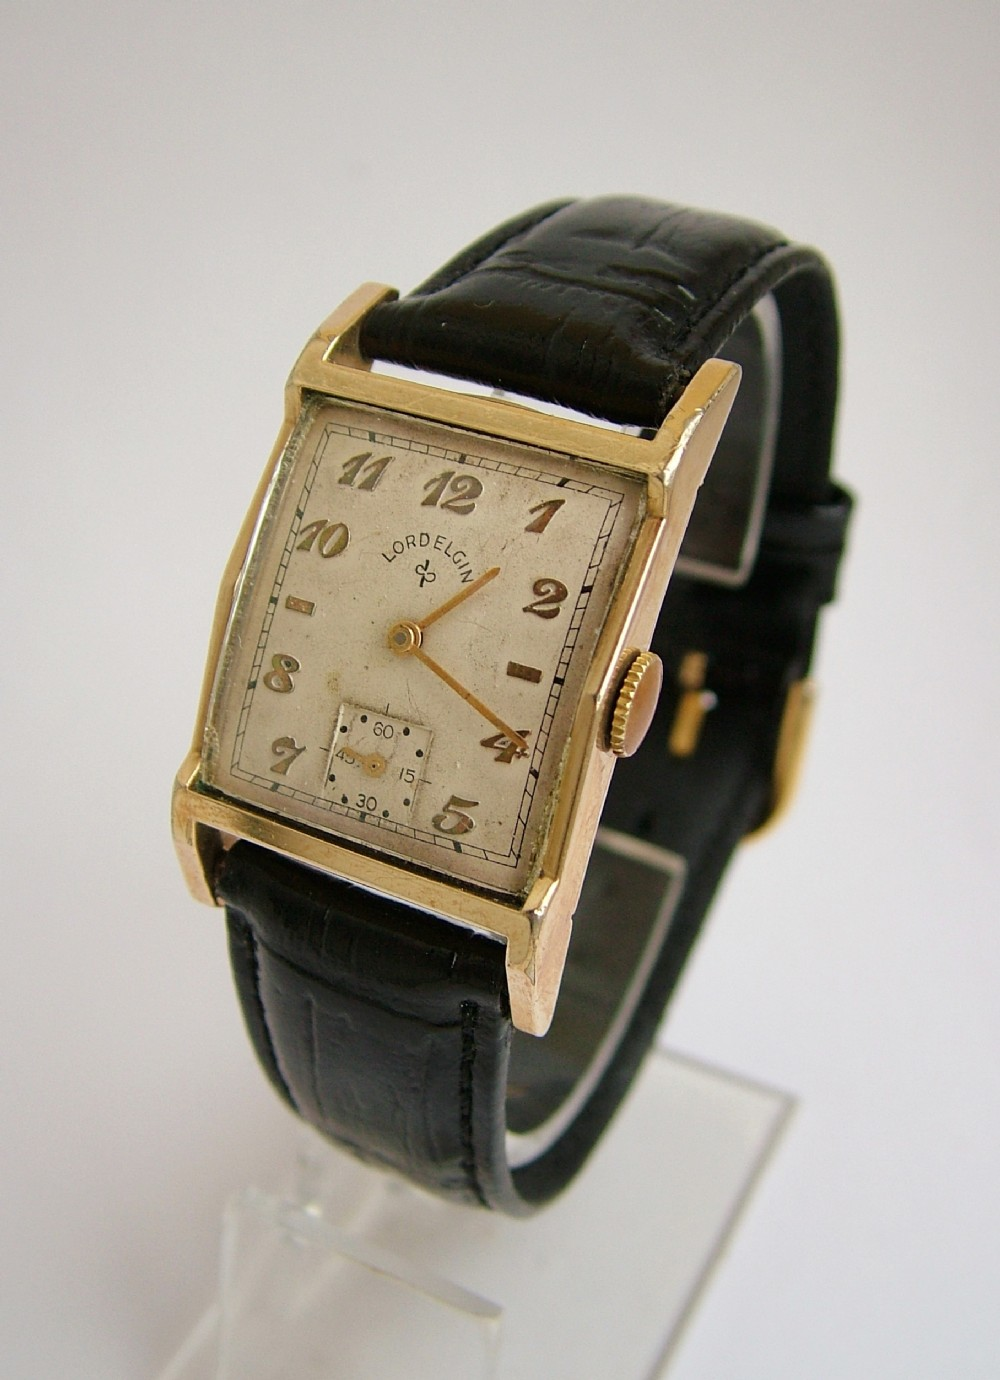 wrist watches watch dealer lord elgin gold a vintagewristwatch highres filled gents vintage